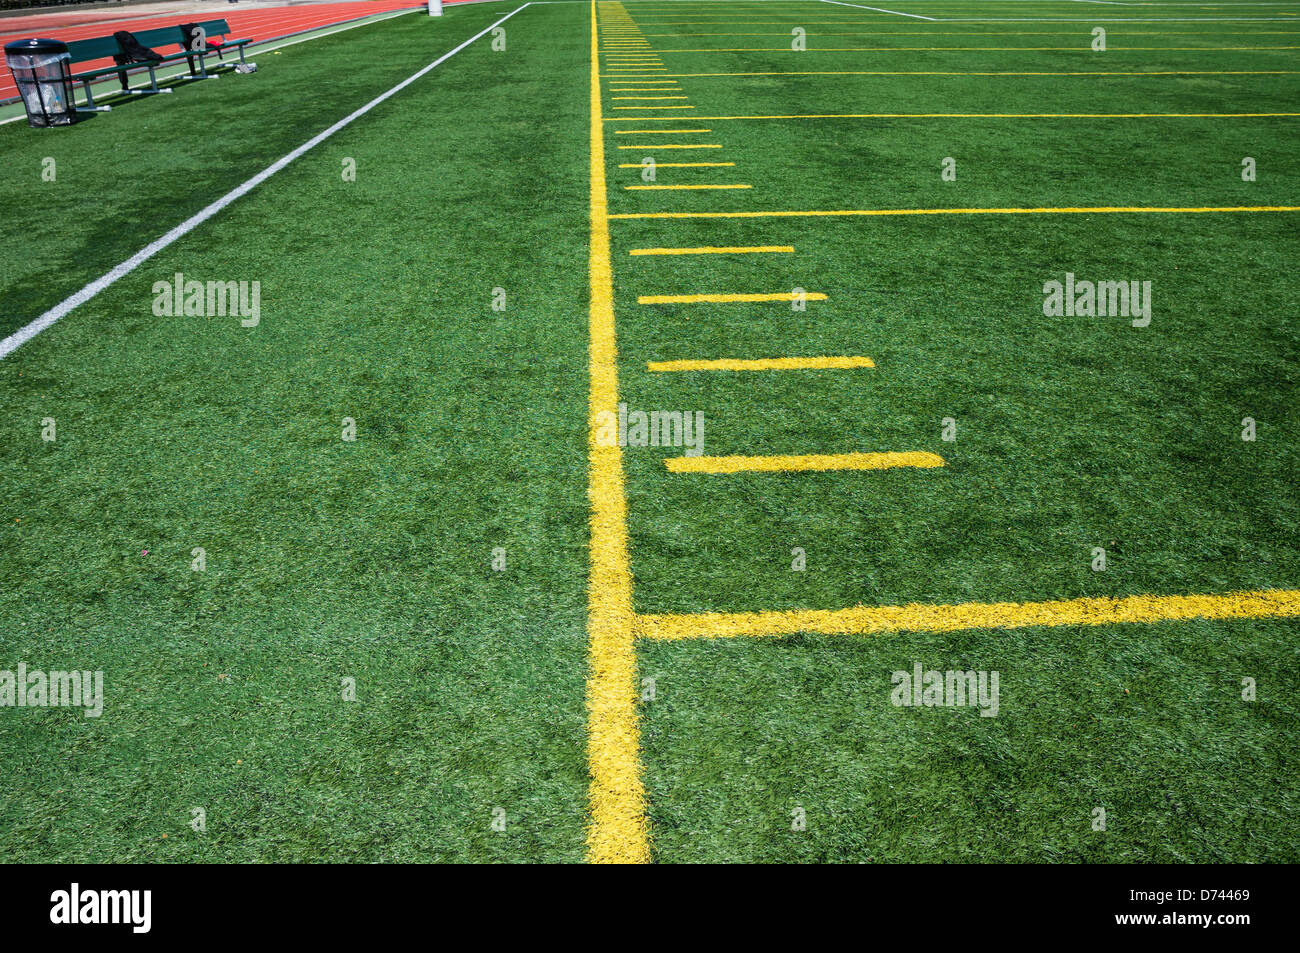 Sideline on American Football artificial turf field with hash marks. - Stock Image